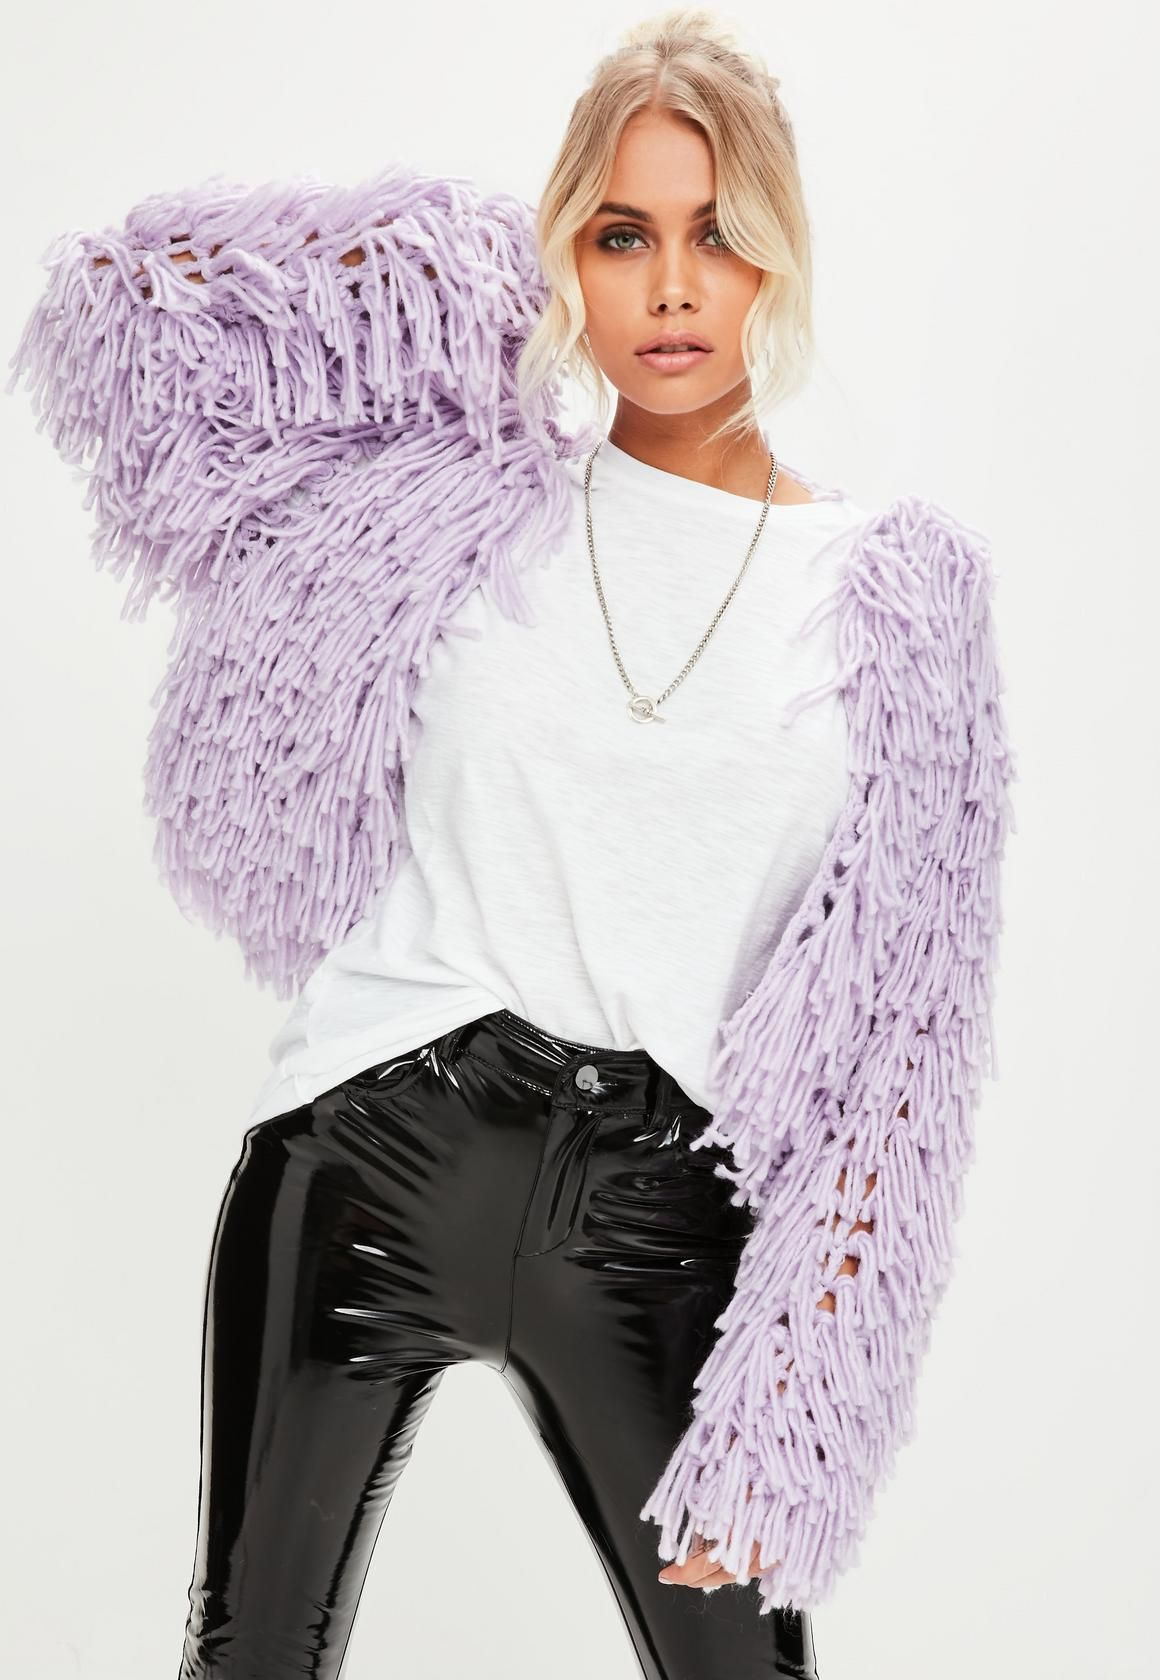 4b47b6be27f568 Missguided - Lilac Shaggy Crop knitted Cardigan